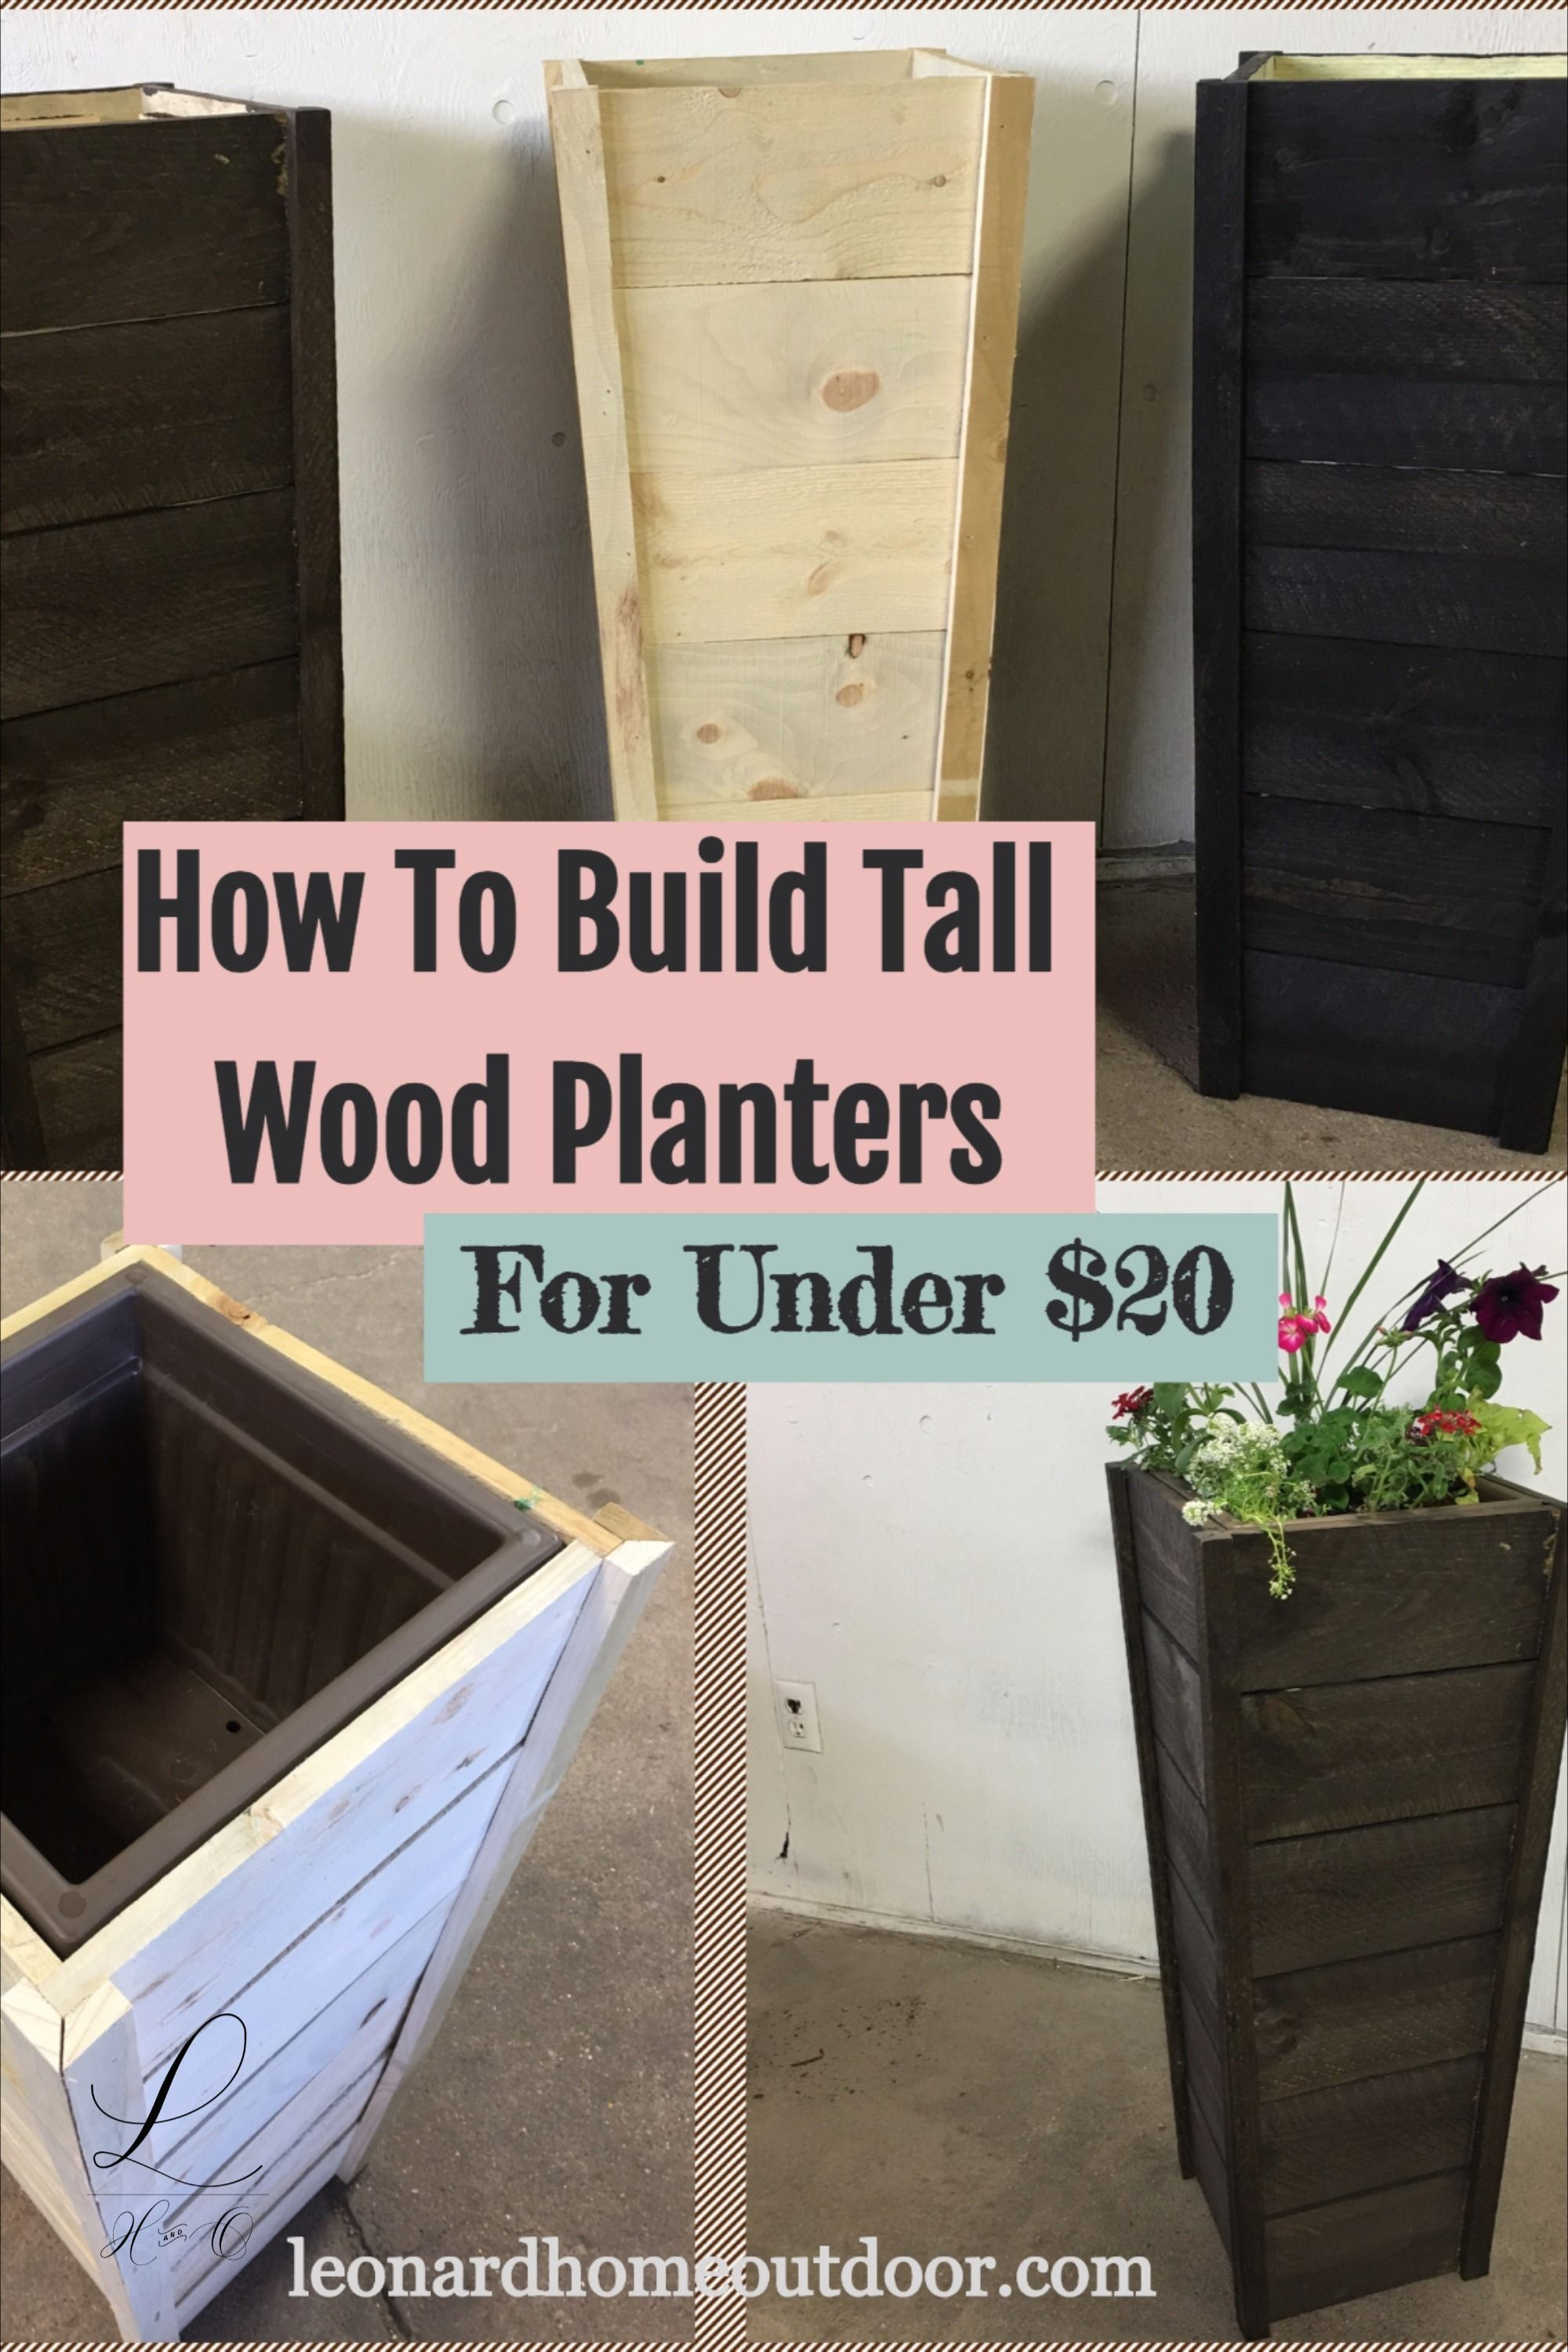 Diy Tall Wood Planters In 2020 Diy Wood Planters Diy Wooden Planters Wood Planters